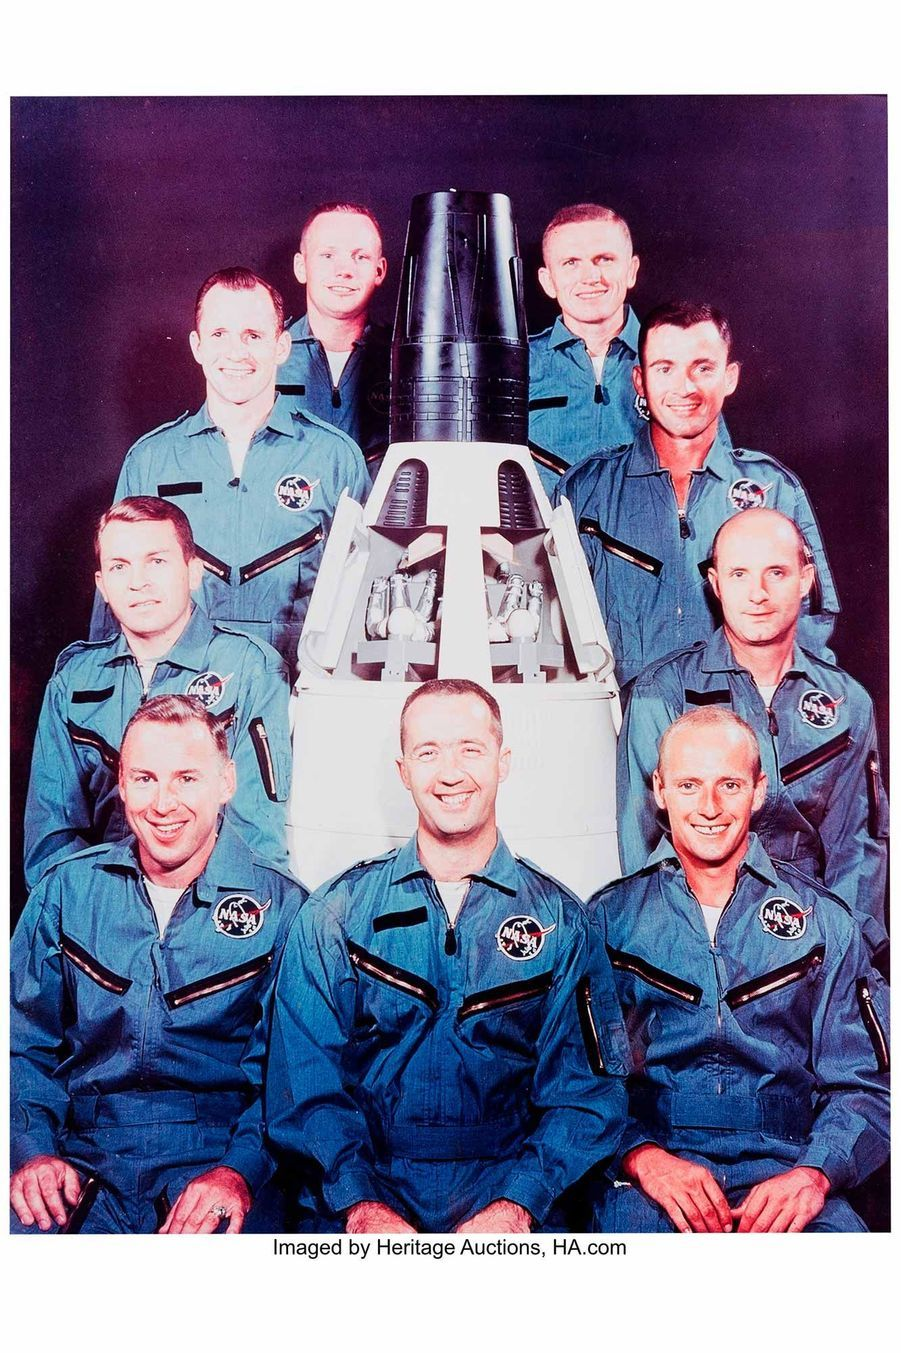 06 Gemini Neil Armstrong's Owned and Worn Early Flight Suit Image credit Heritage Auctions